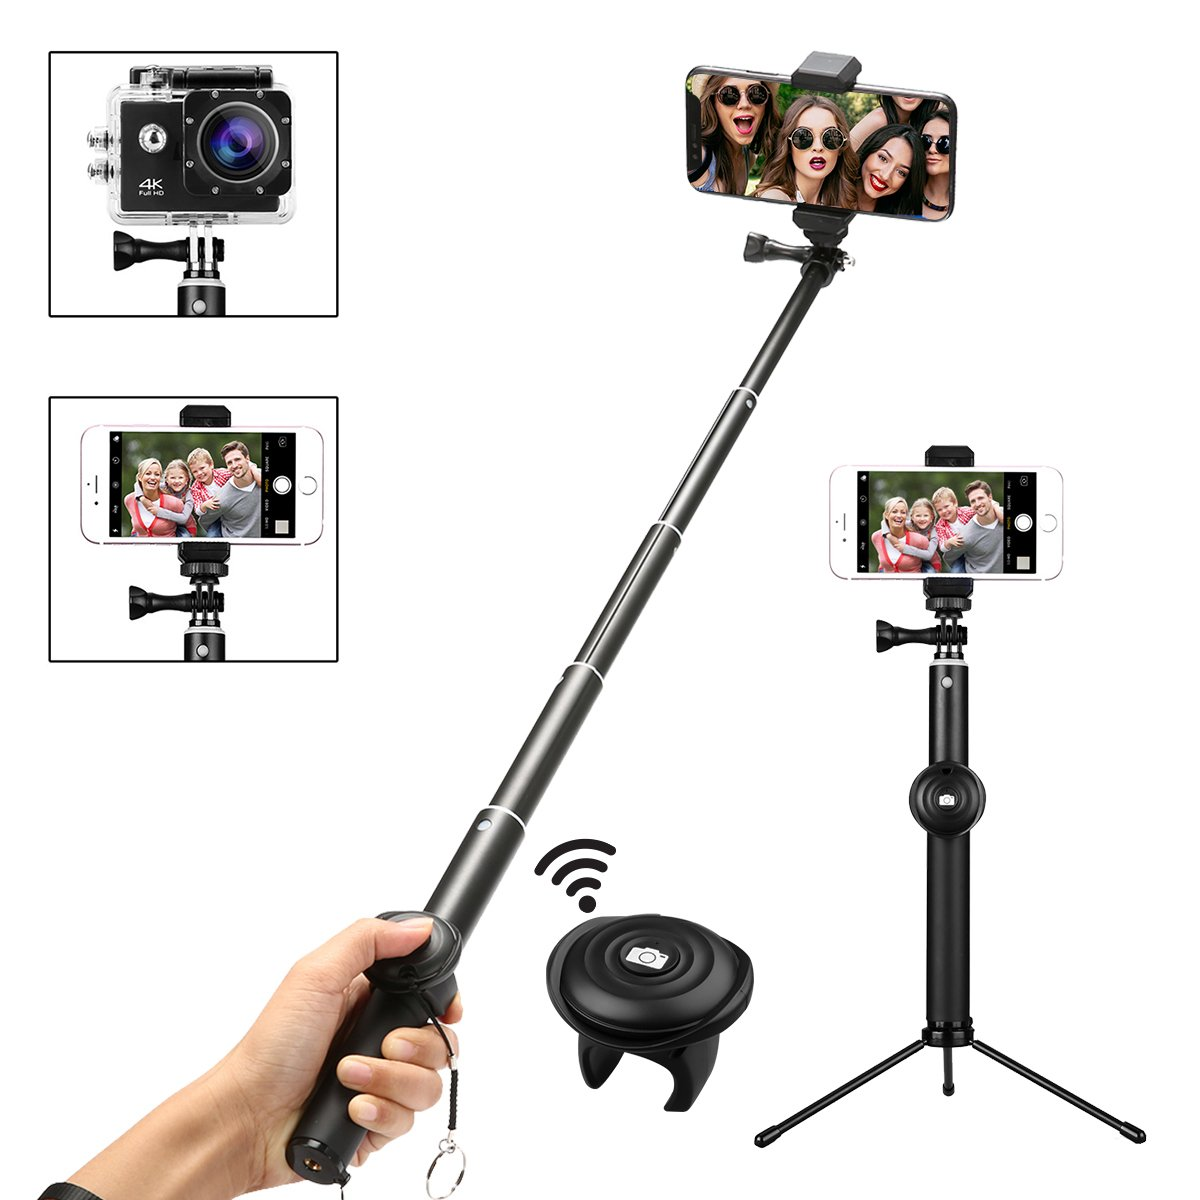 Bluetooth Selfie Stick and Tripod, M.Way 360 ° Rotation Monopod with Detachable Remote Control and Phone Camera Tripod for iPhone X/8/7/6/5 Series, Samsung Galaxy S7 S8 Plus Edge, Gopro, Cameras and More Smartphones Yisreimus_CA